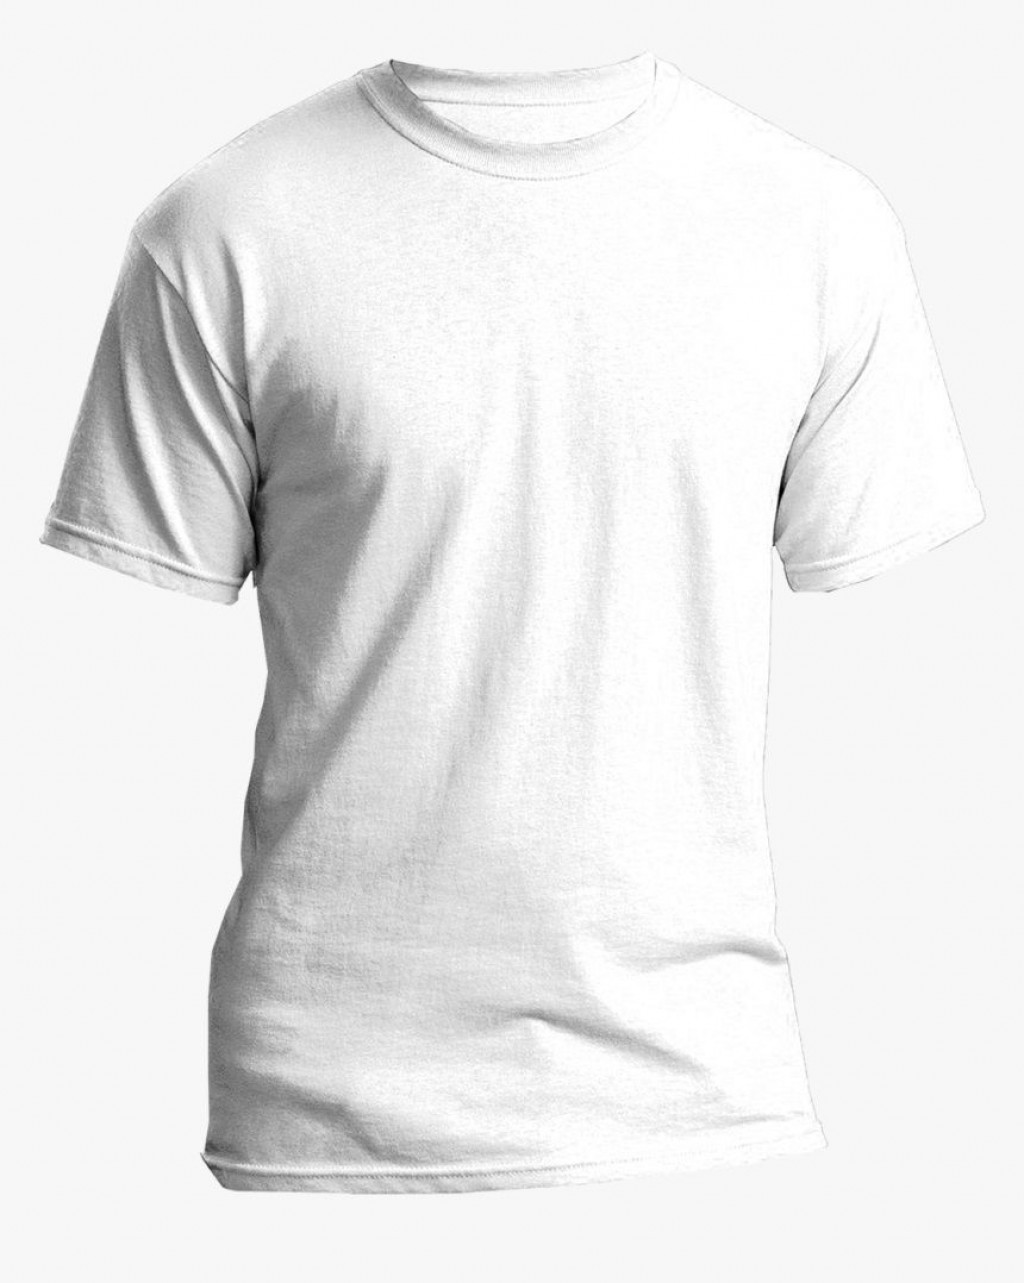 000 Impressive Plain T Shirt Template Concept  Blank Front And BackLarge